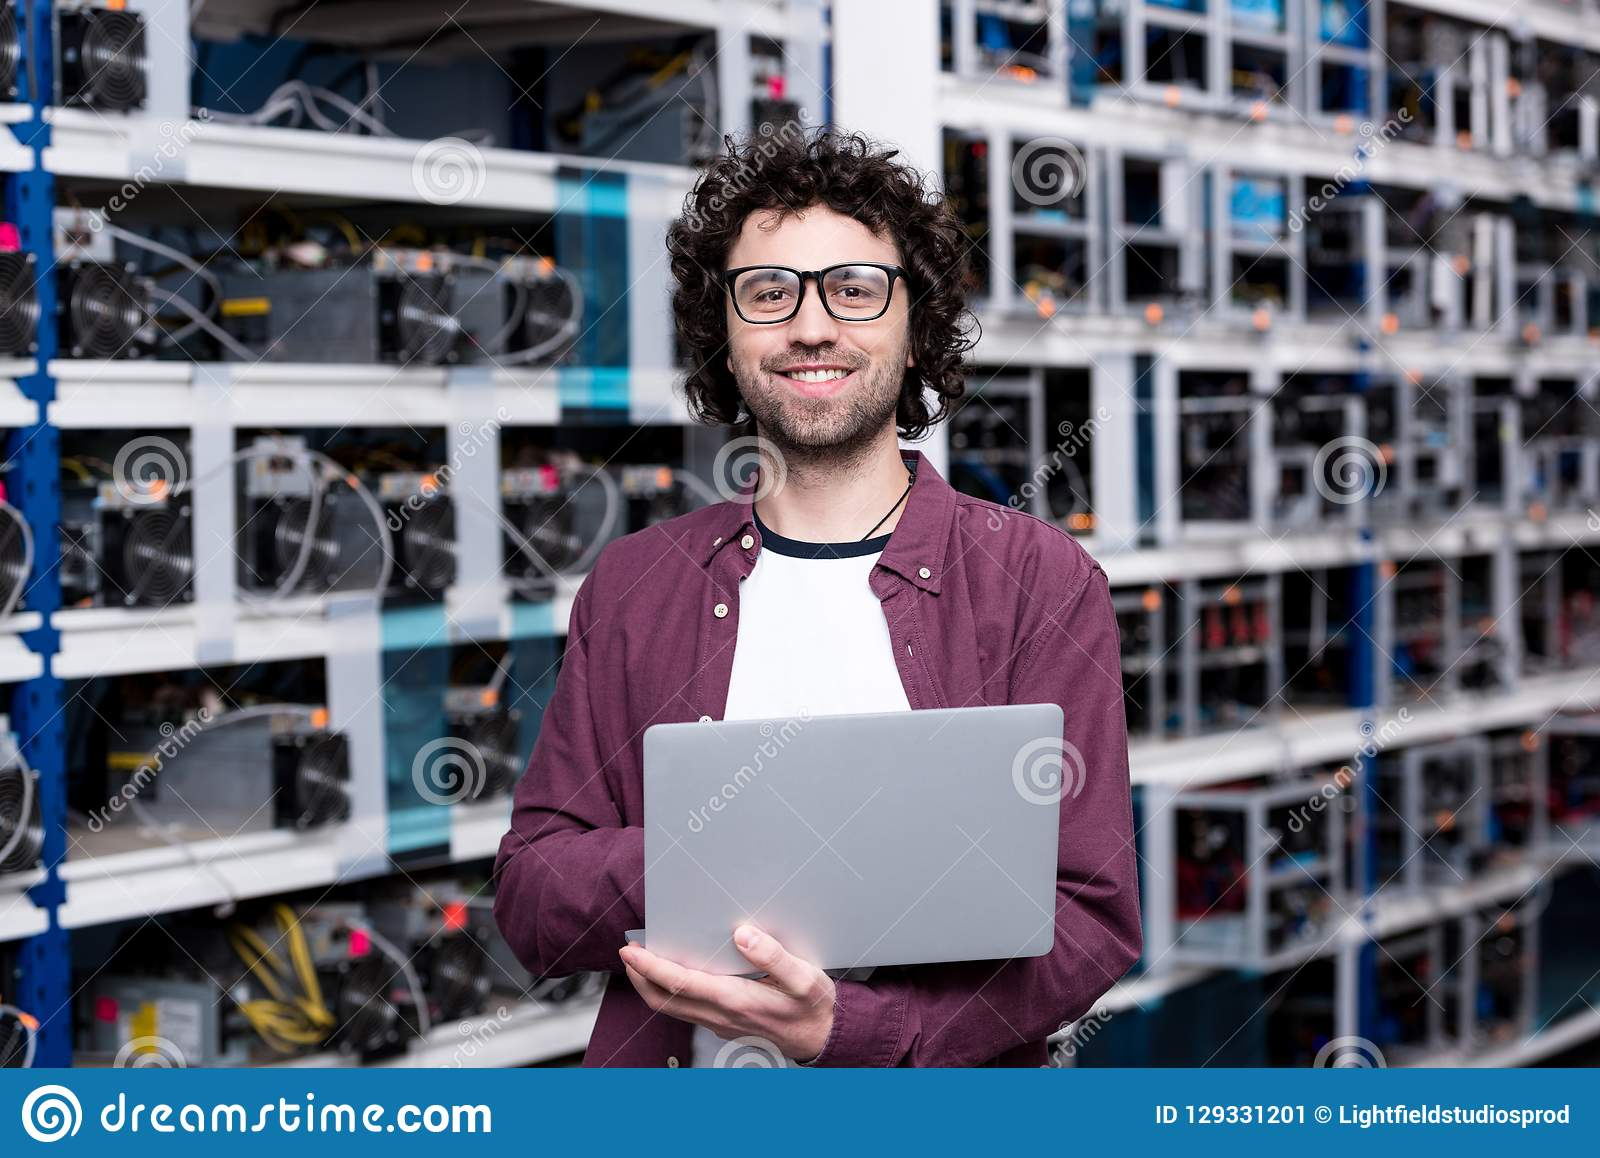 Young computer engineer with laptop at cryptocurrency mining farm stock image